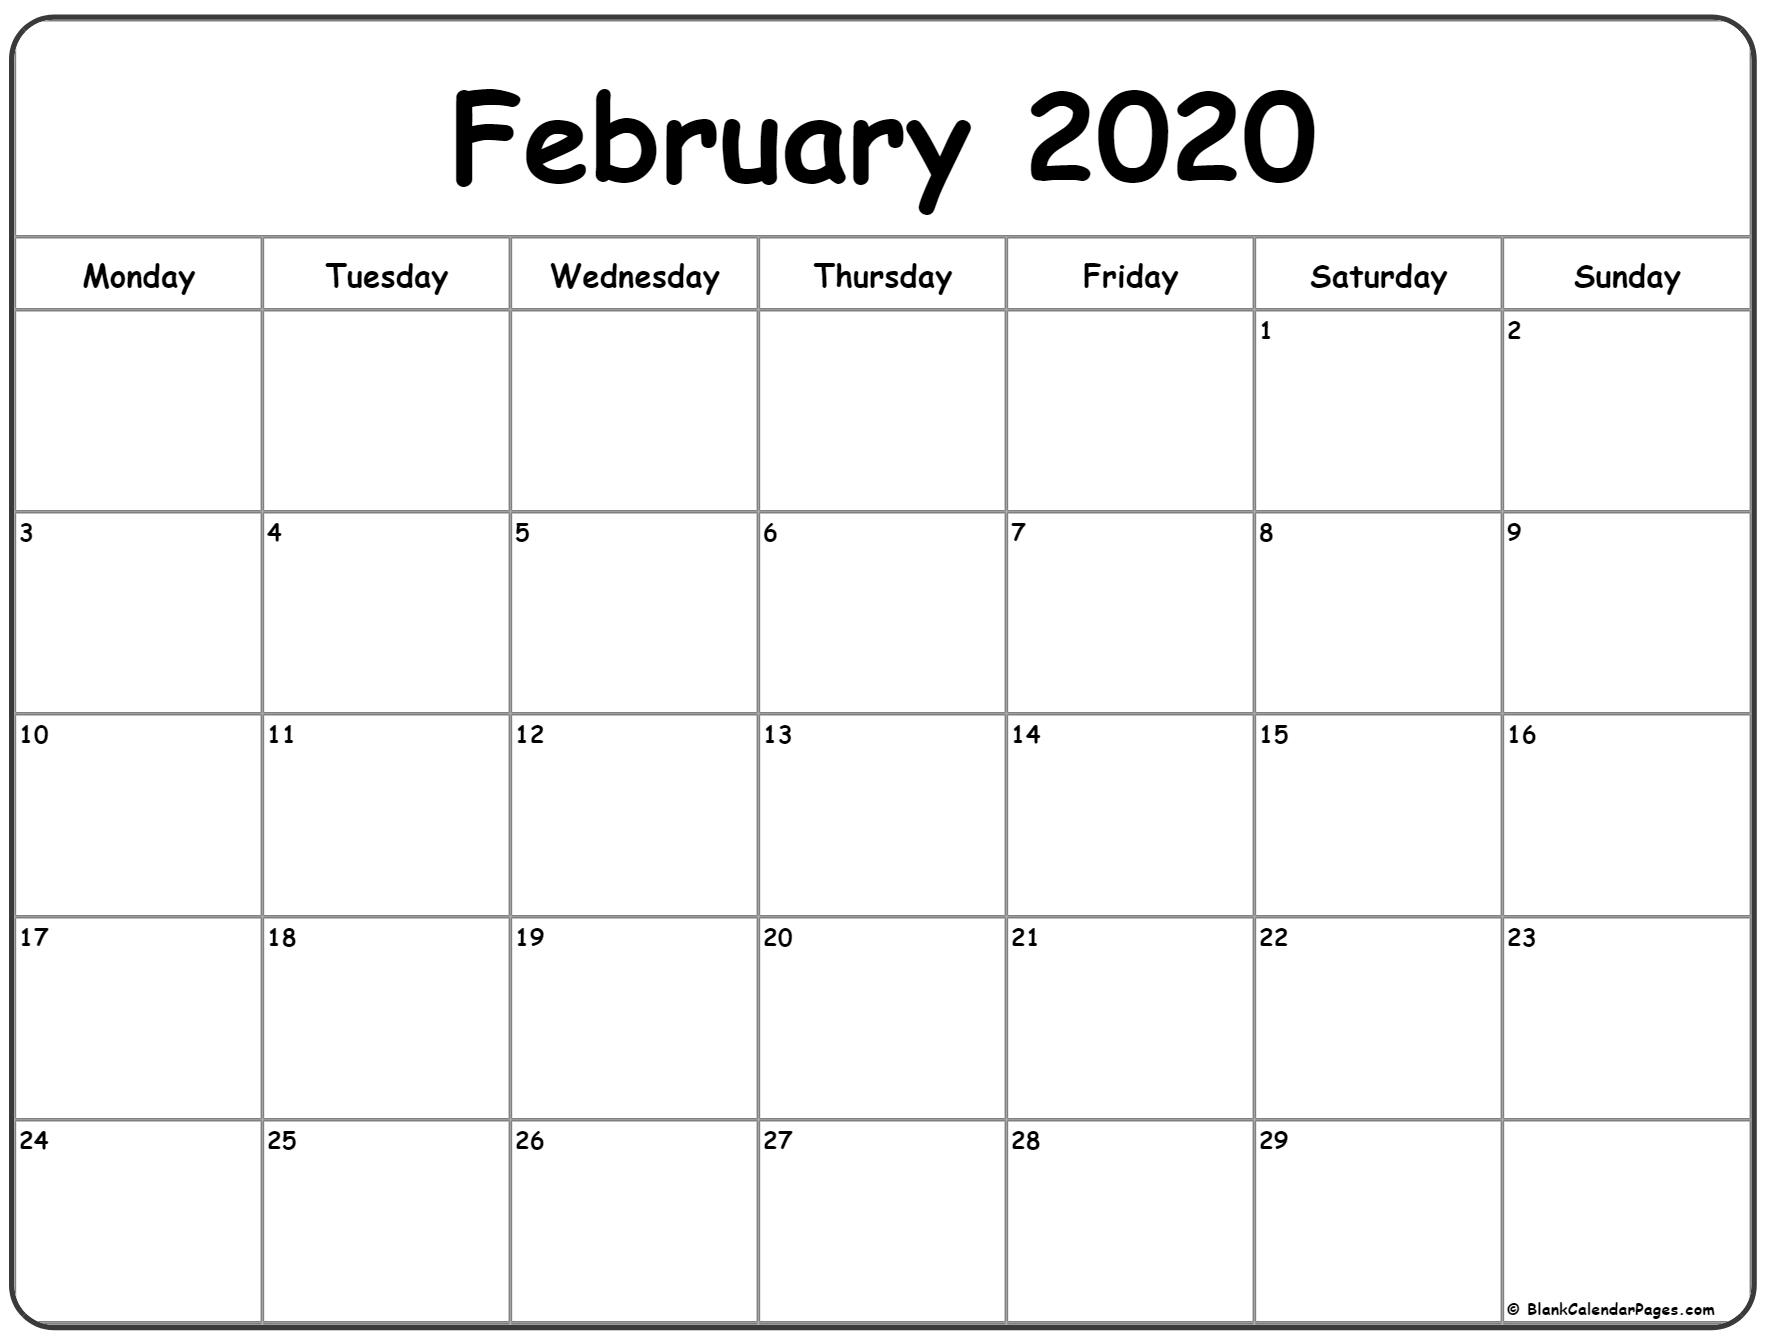 February 2020 Monday Calendar | Monday To Sunday in 2020 Calendar Print Mon To Sunday